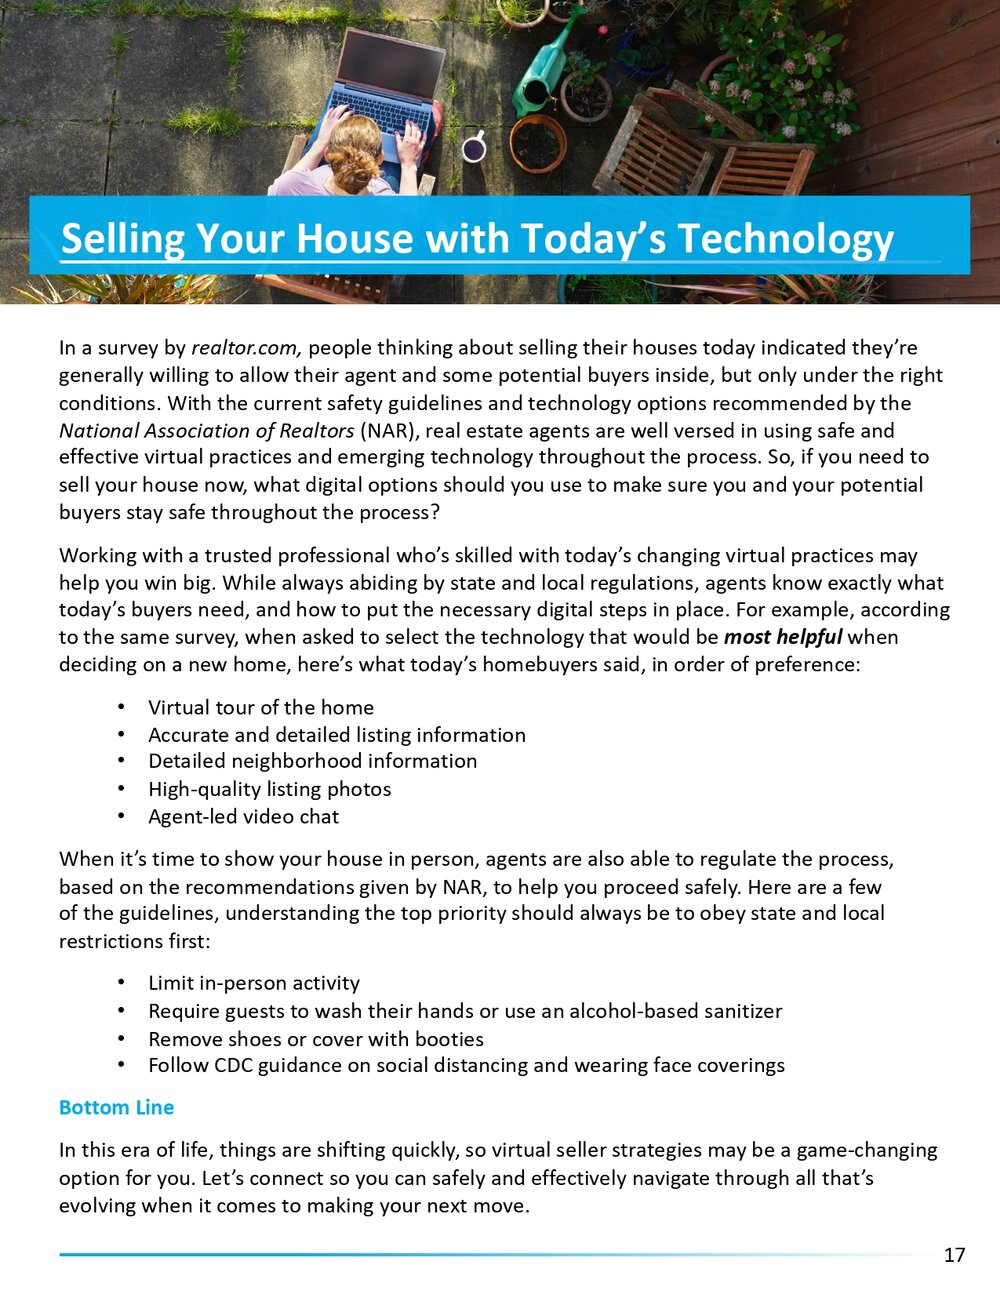 SellingYourHouseSpring2021_page-0017.jpg